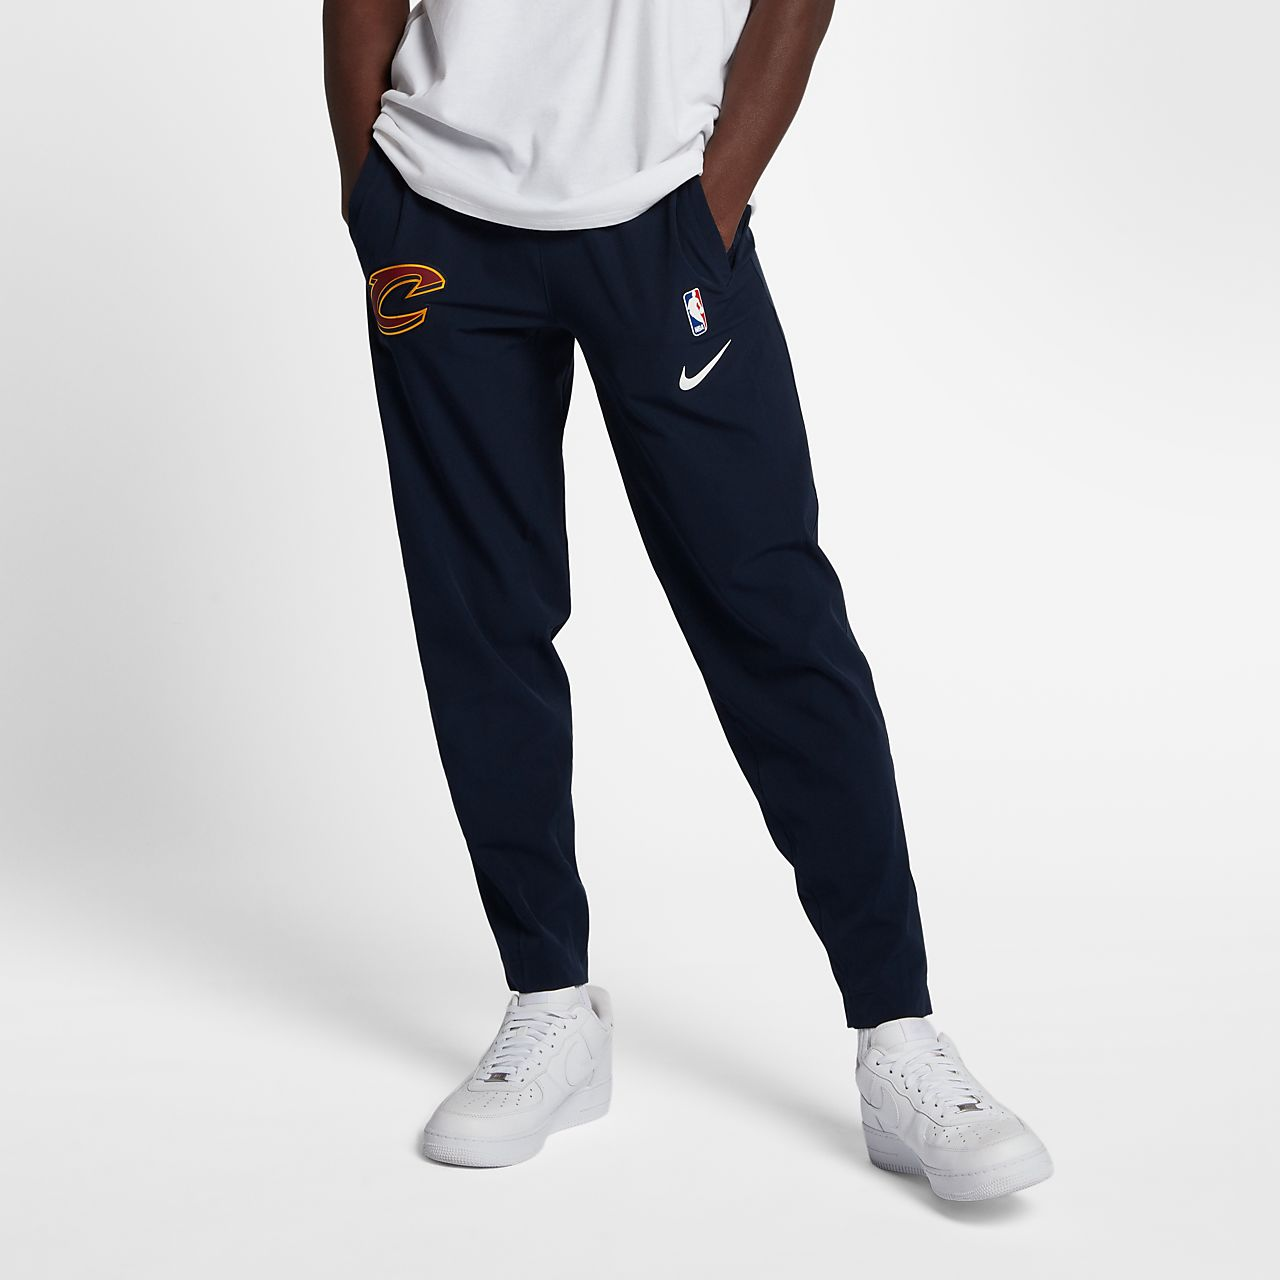 Men's Nba Trousers Fi Cavaliers Showtime Cleveland Nike 81Rtqxw